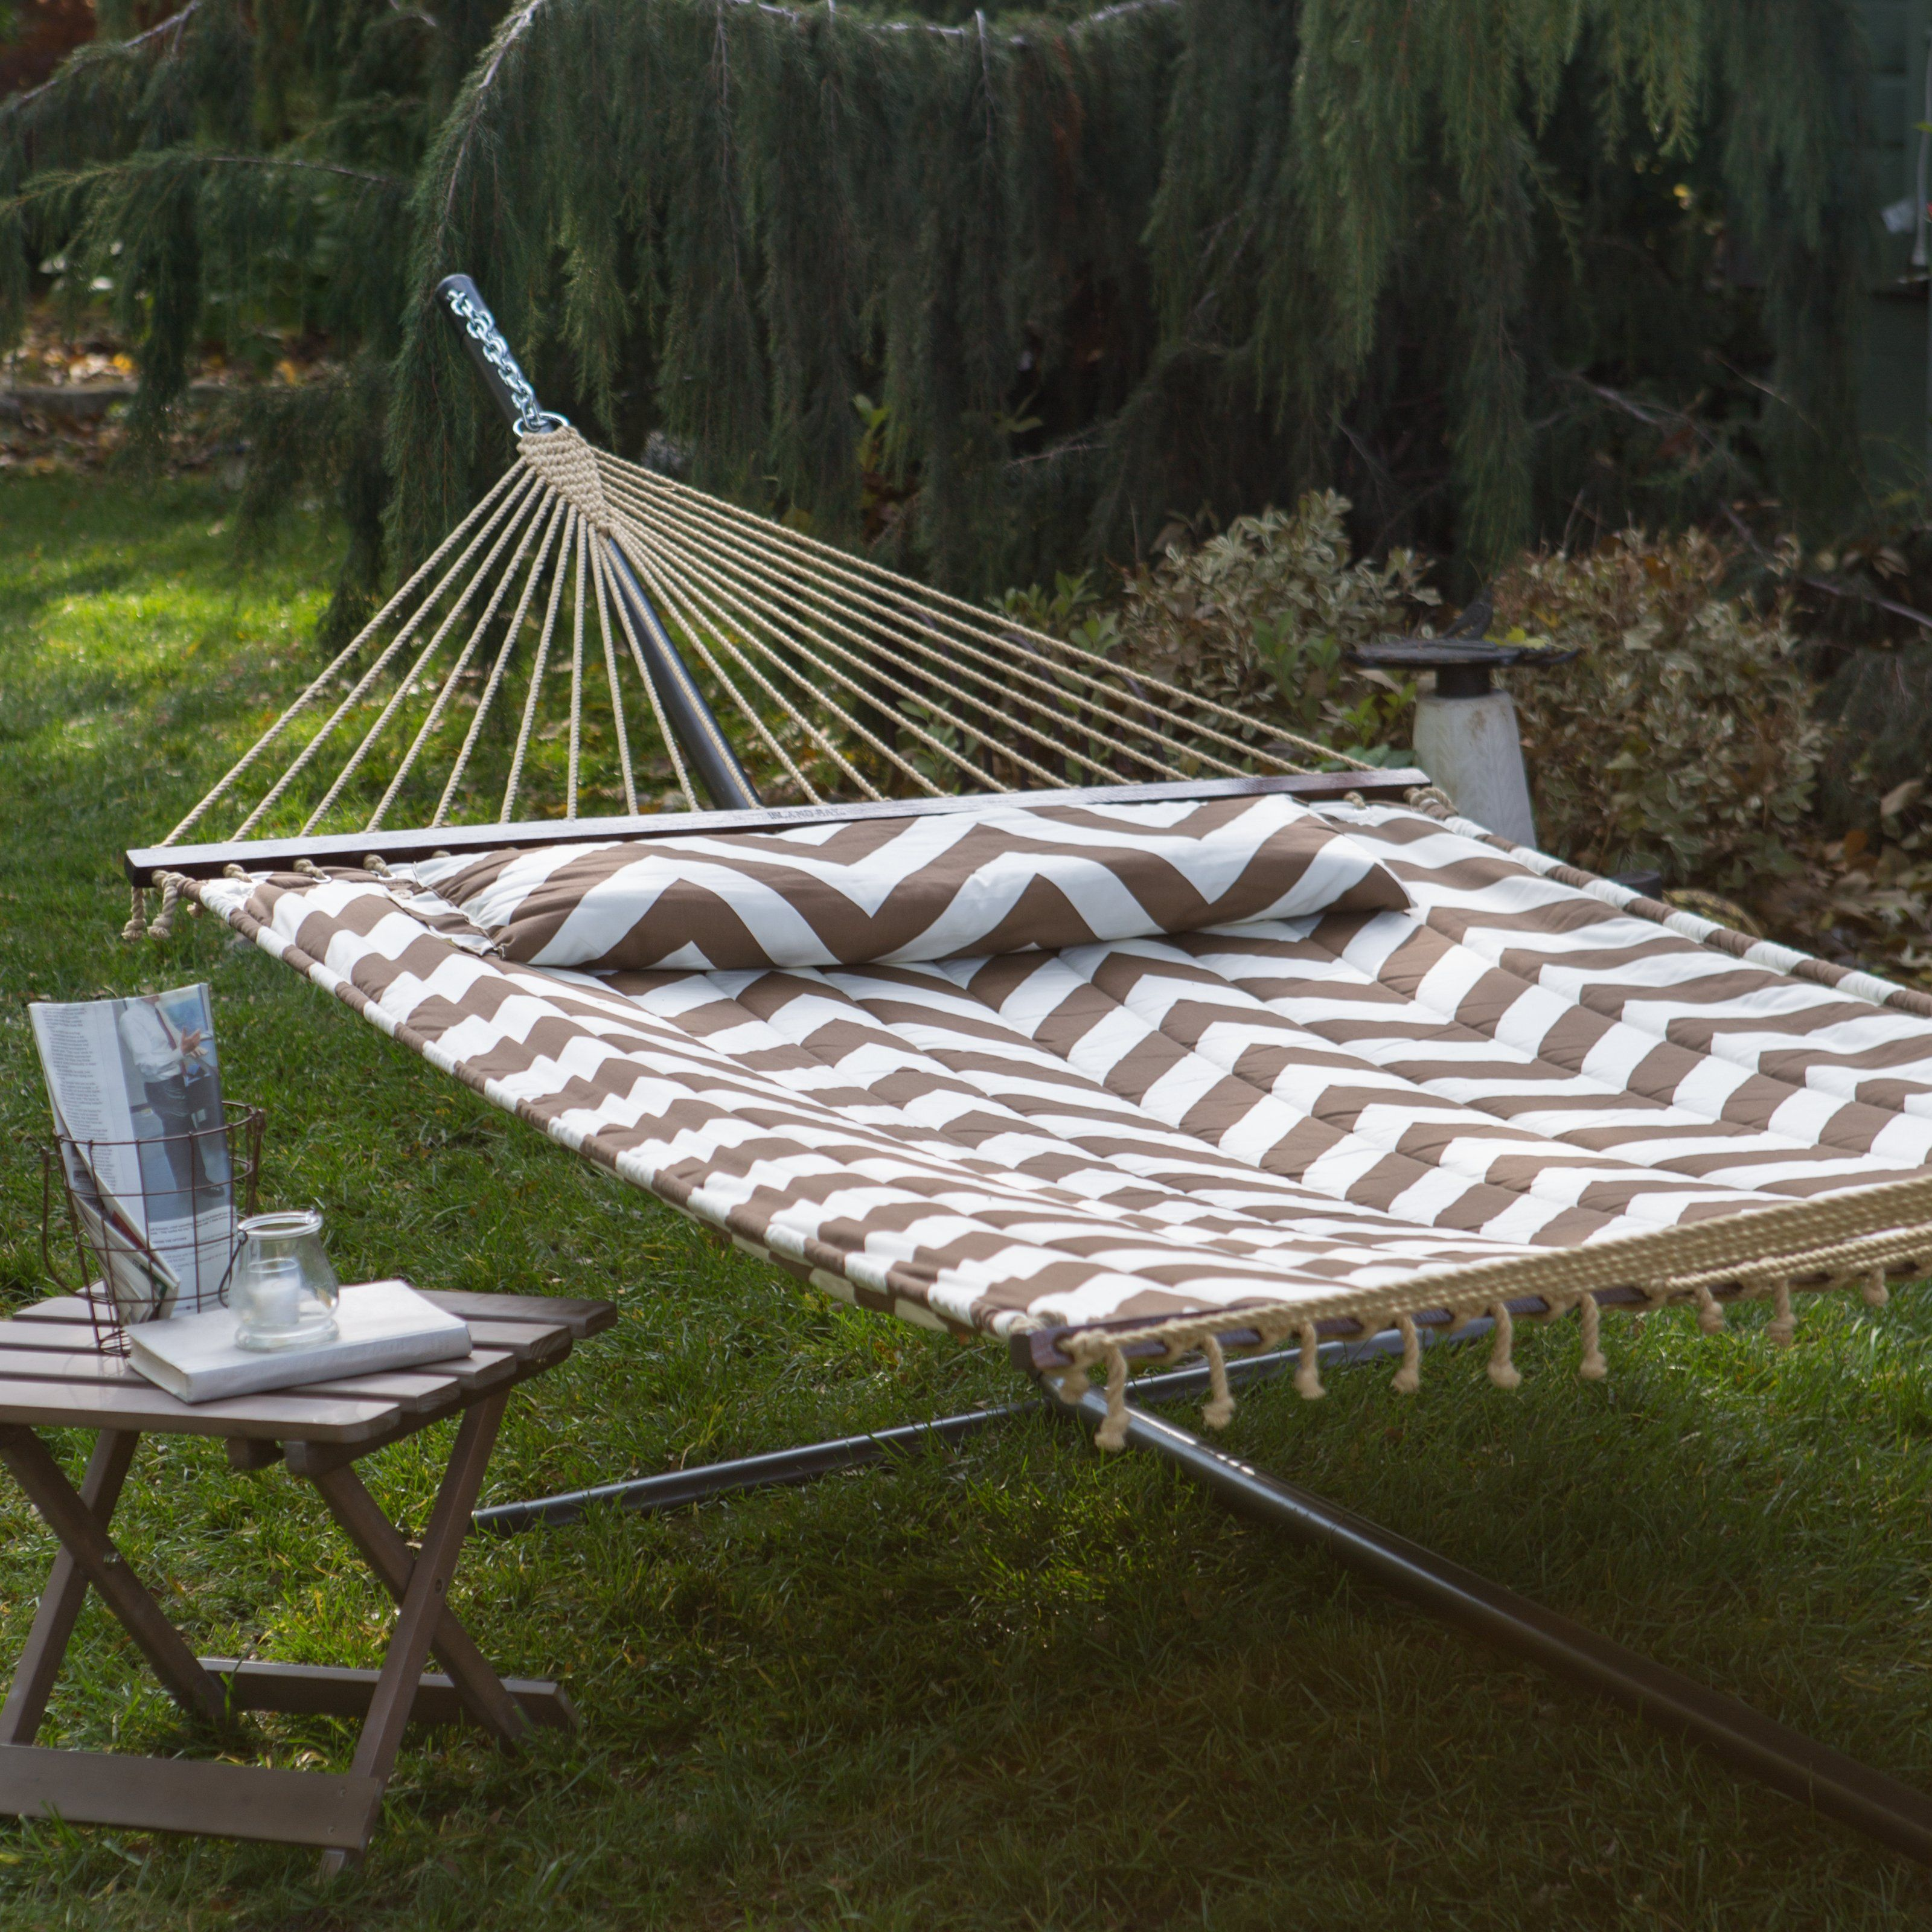 living outdoor outsunny person storage beige food seat hammock garden patio metal covered with swing console canopy hanging buy chair tray backyard cushioned lounger frame furniture